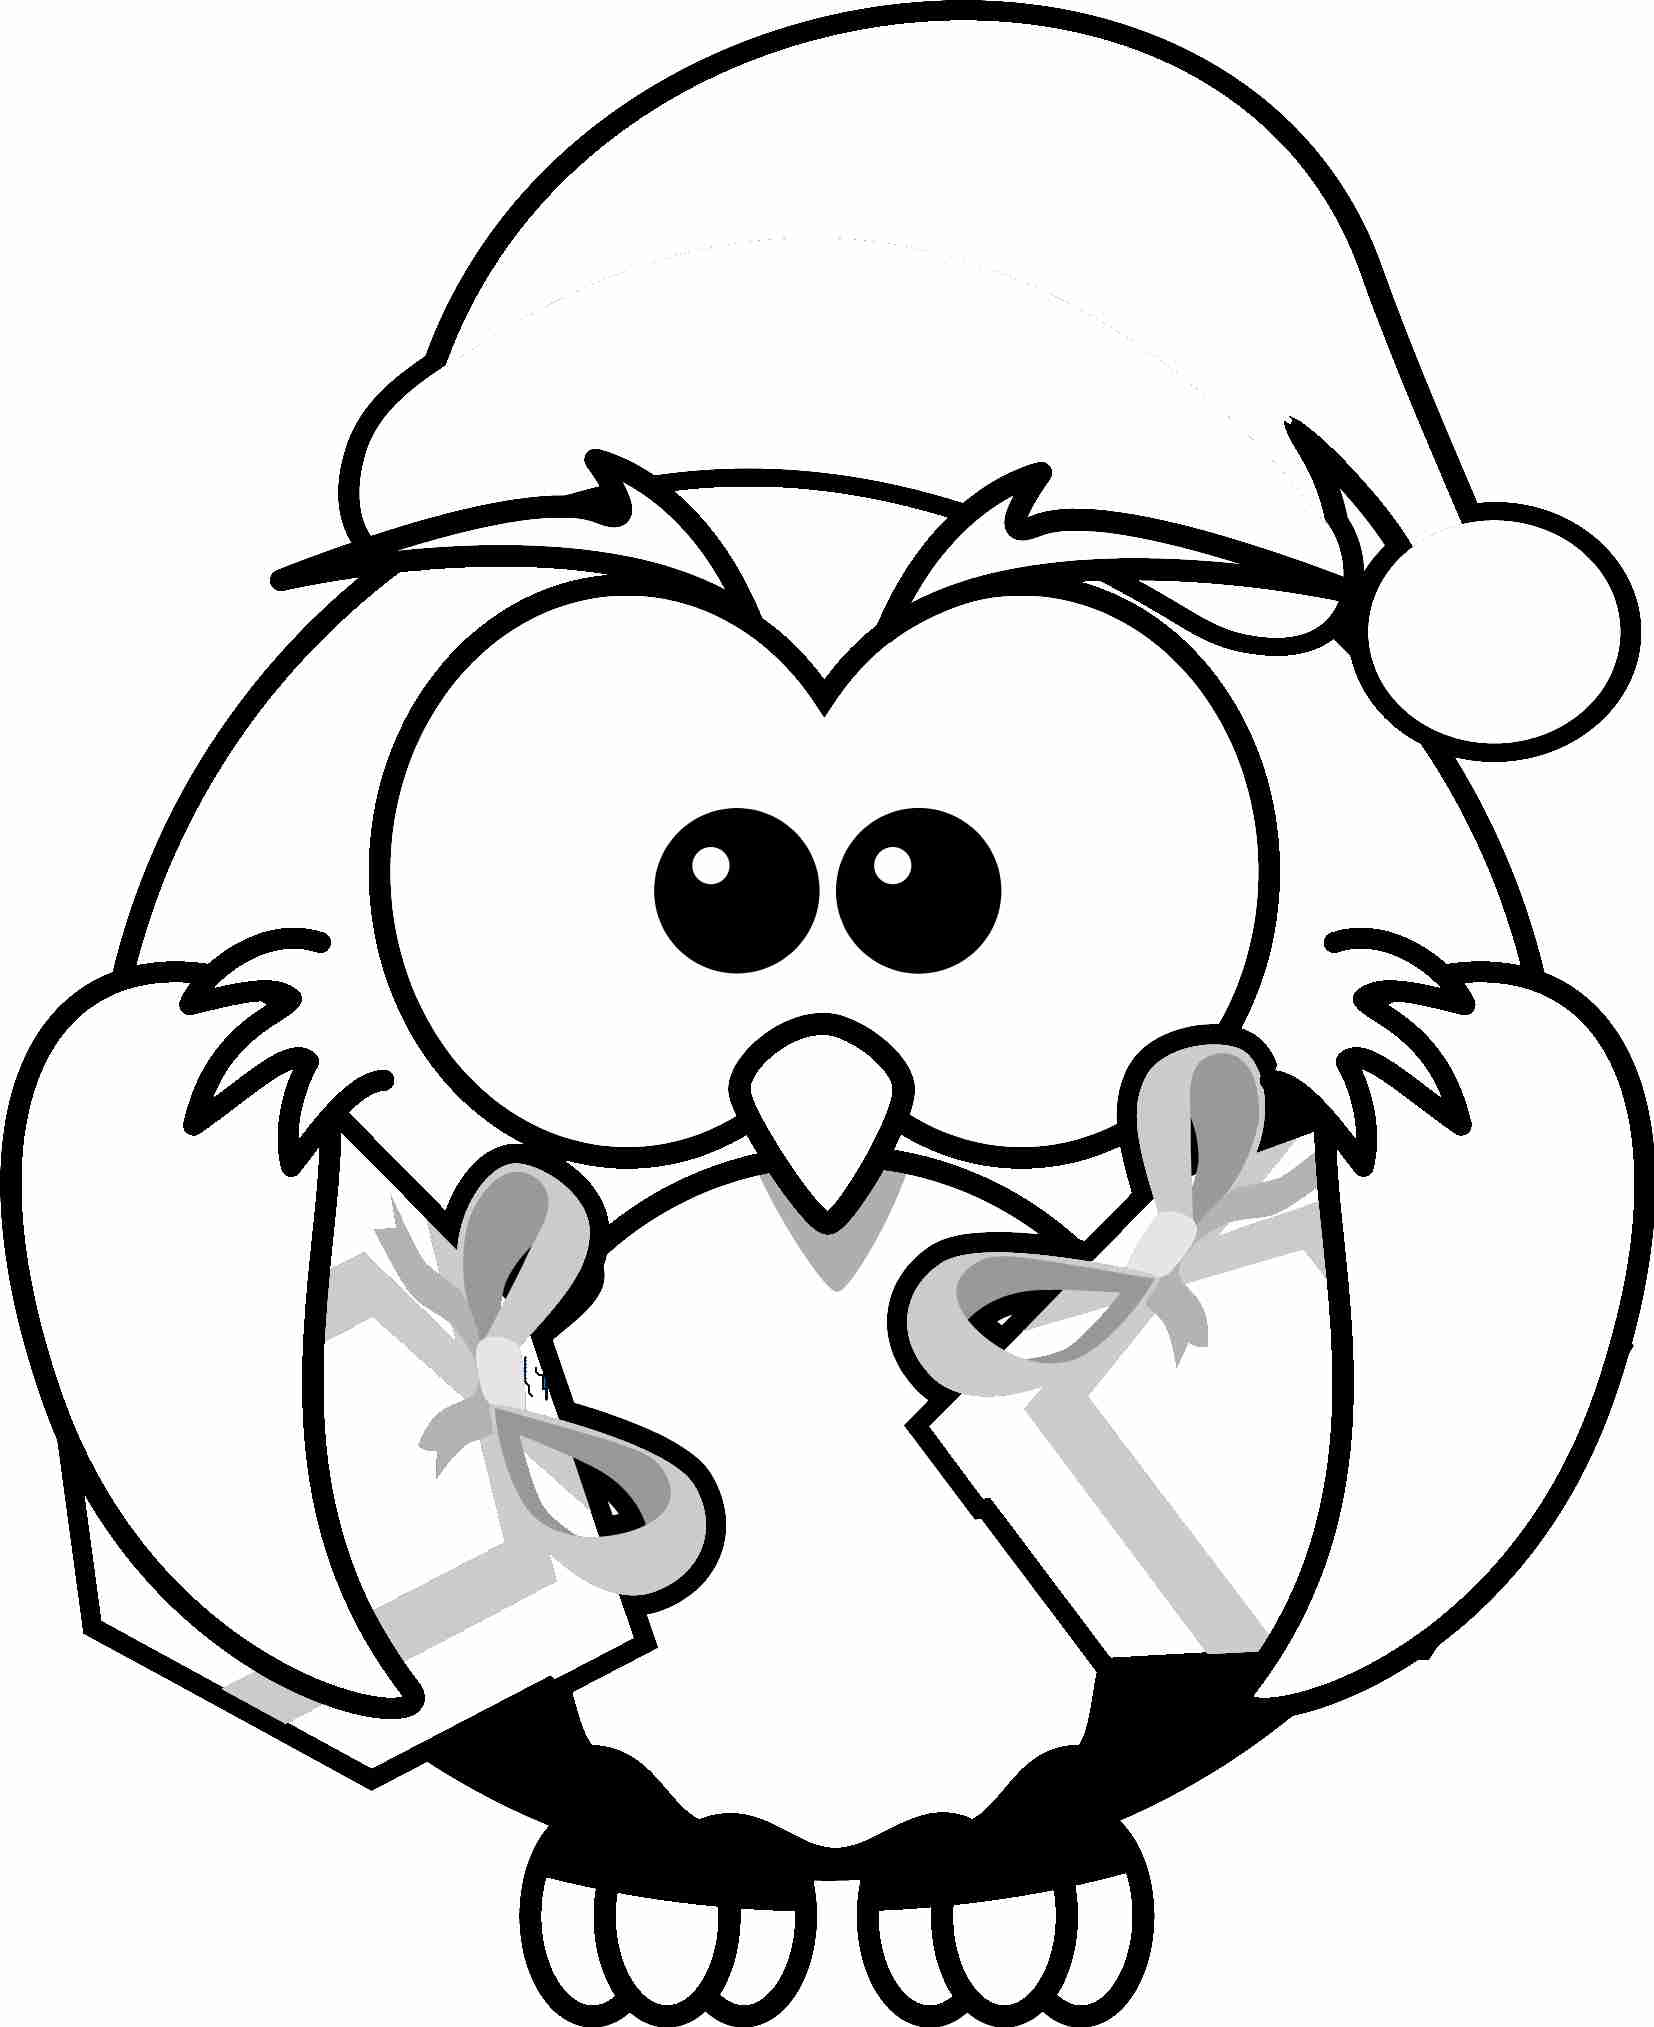 Boy Christmas Coloring Pages At Getdrawings Com Free For Personal